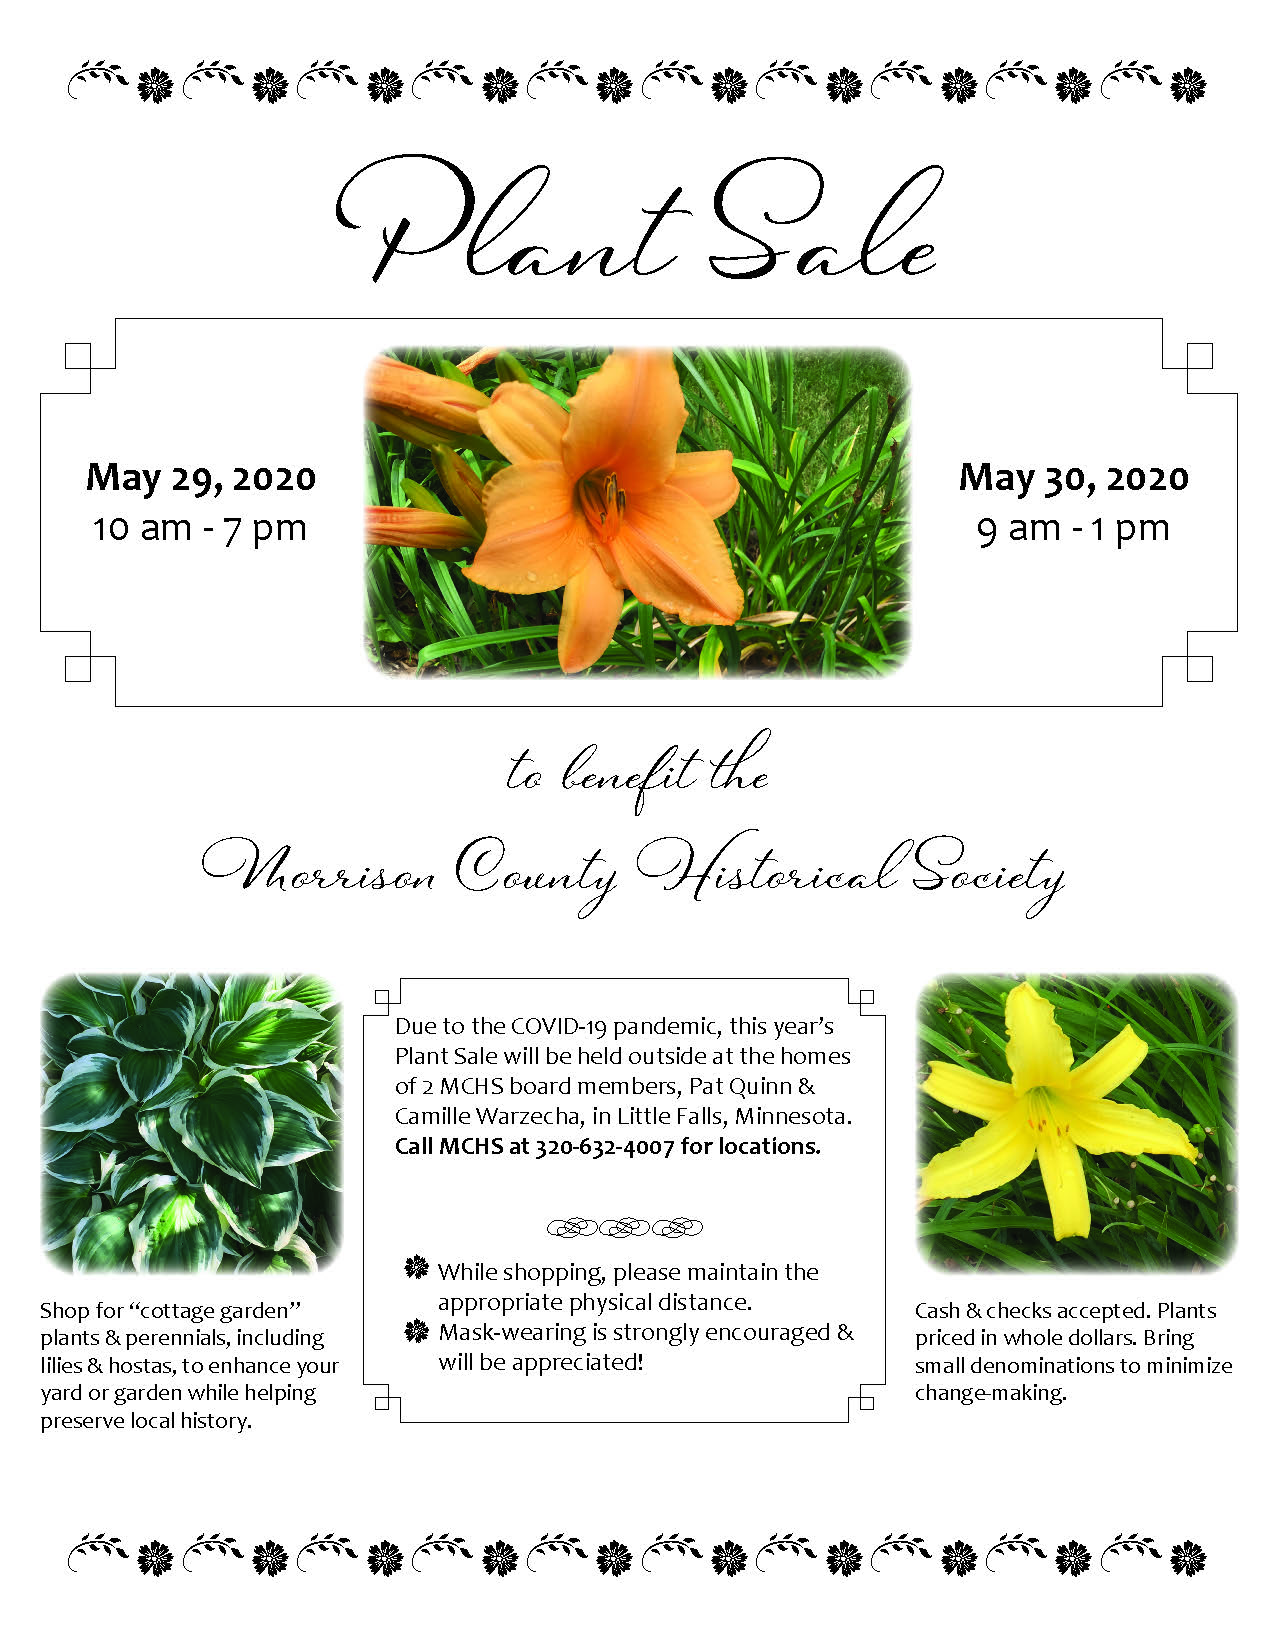 2020 Plant Sale flier, Morrison County Historical Society.